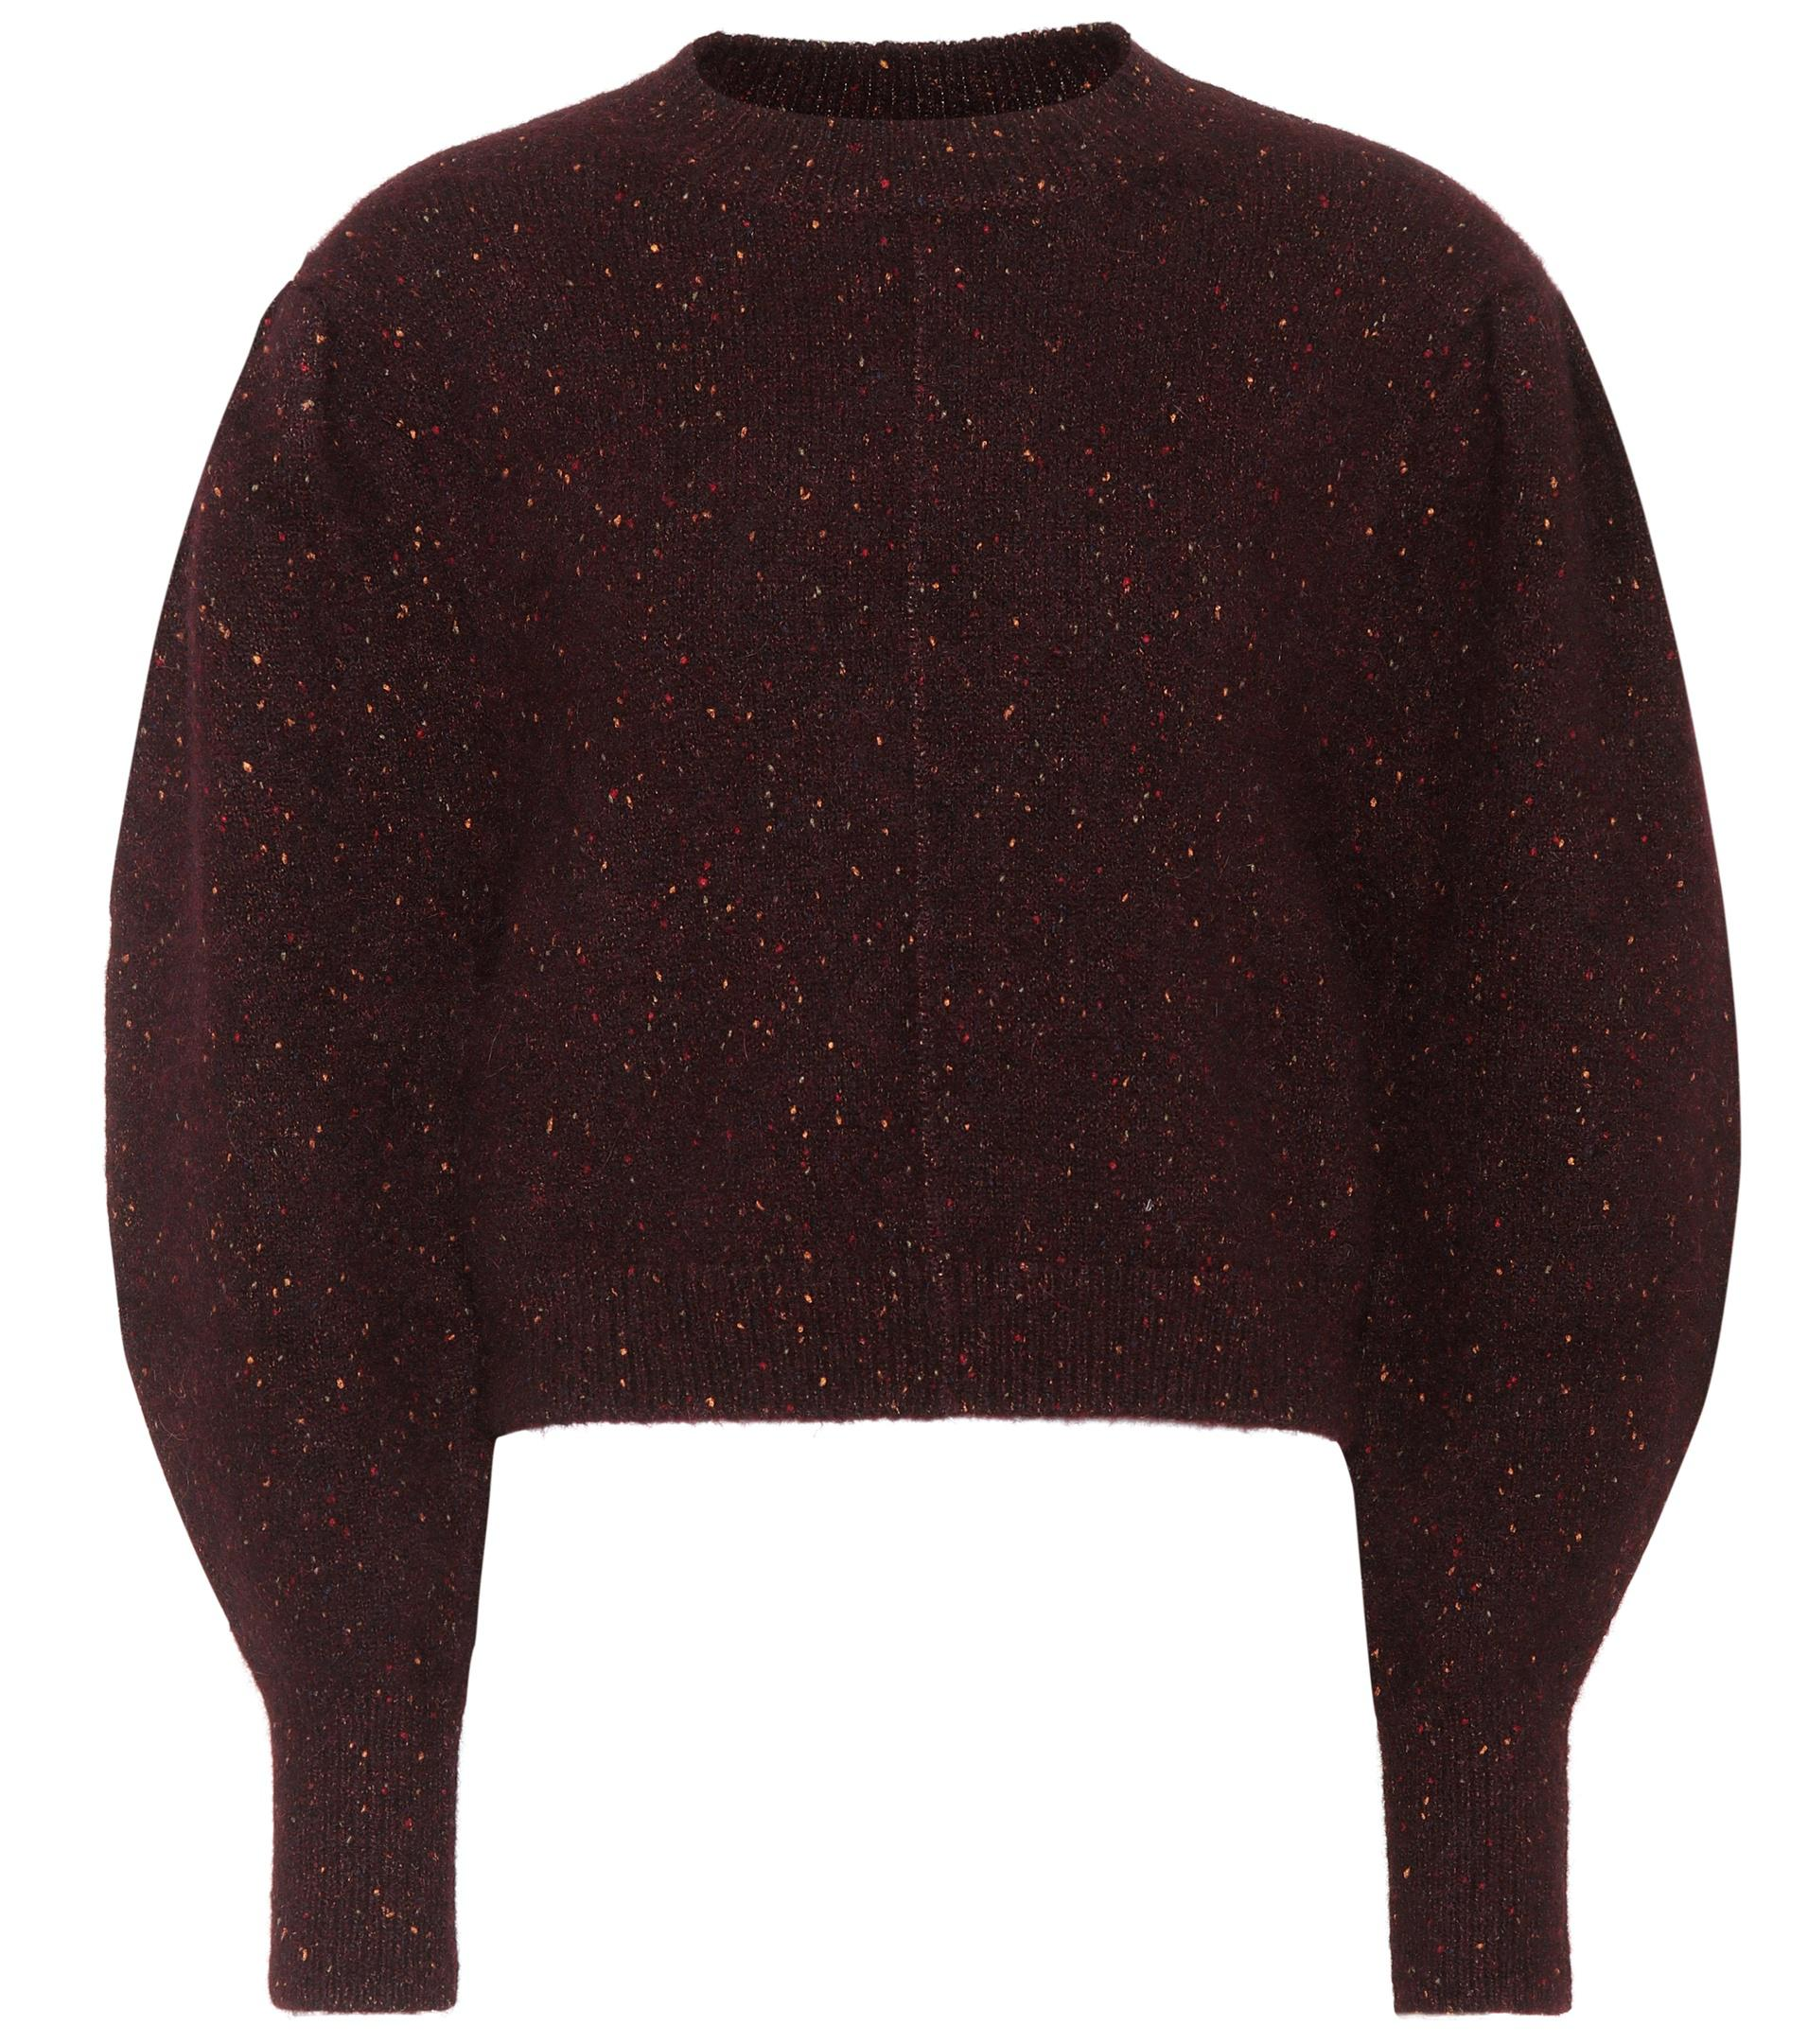 Denver wool-blend sweater Isabel Marant Sale Enjoy Cheap Sale Get Authentic Official Site Sale Online Cheap Sale Online Popular Cheap Price ymdd1b